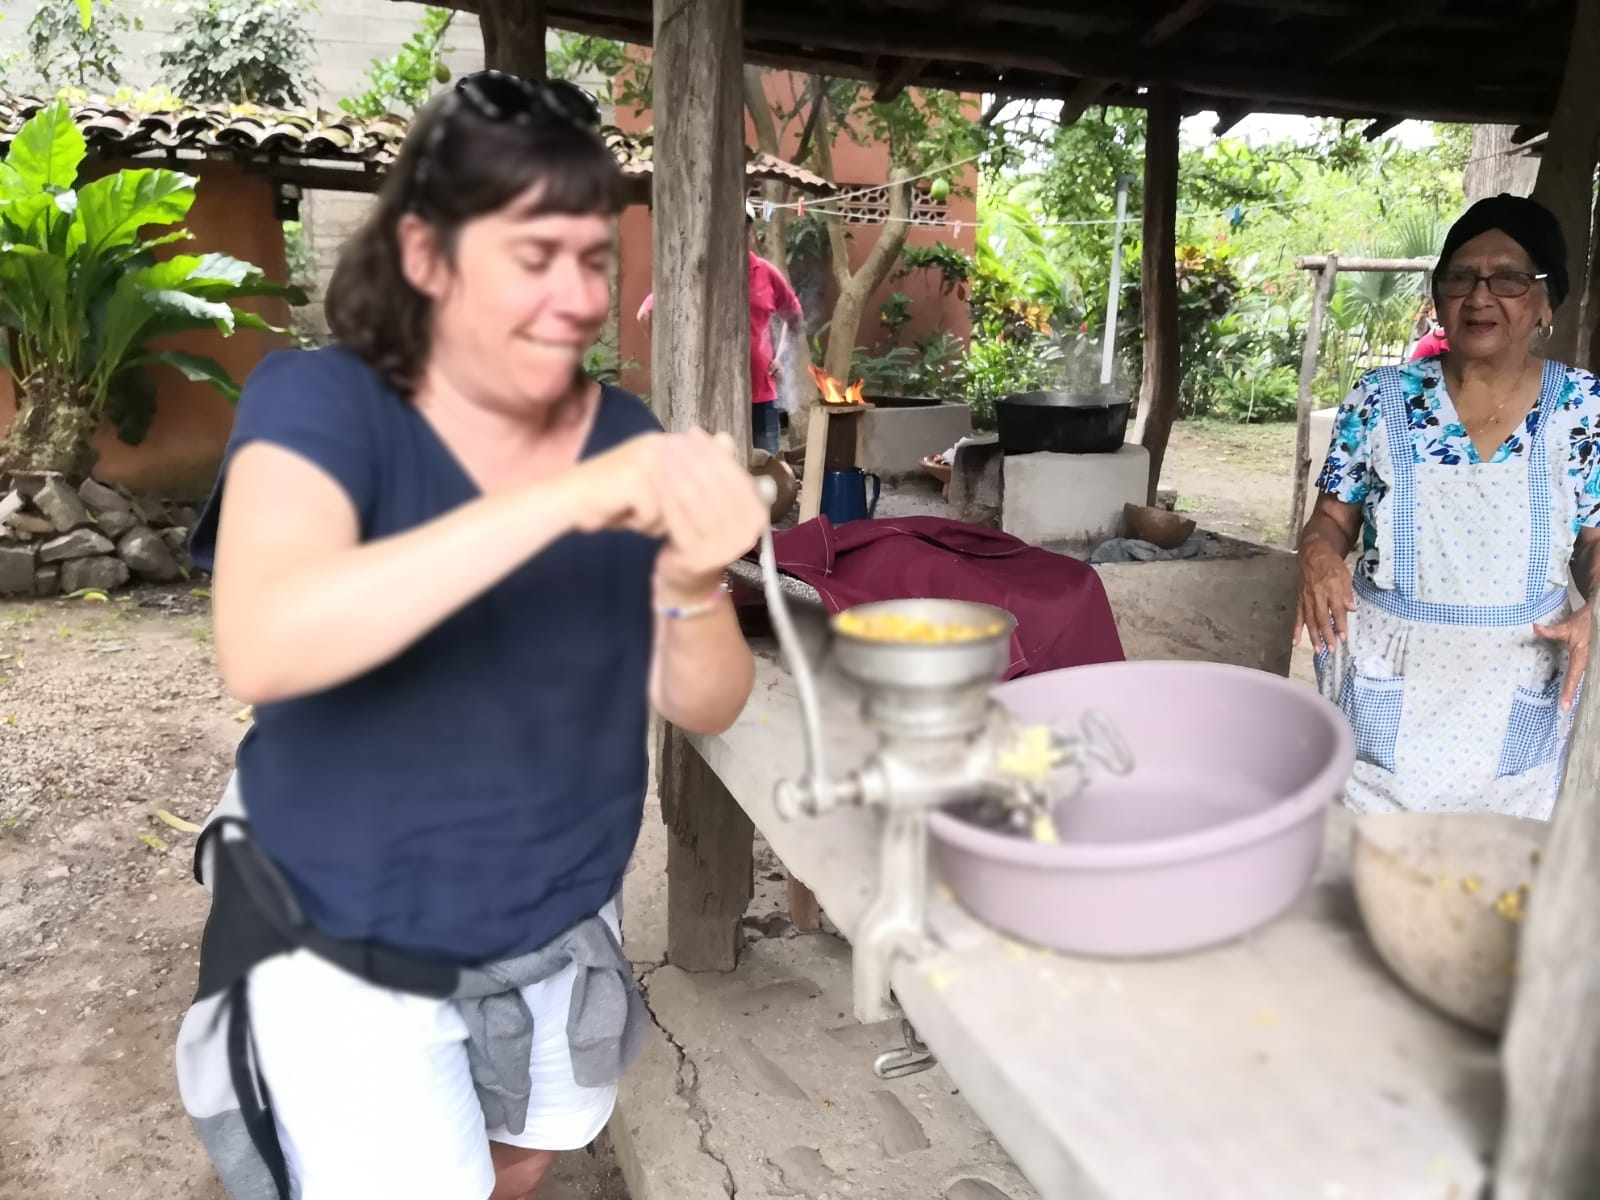 Tortilla making process